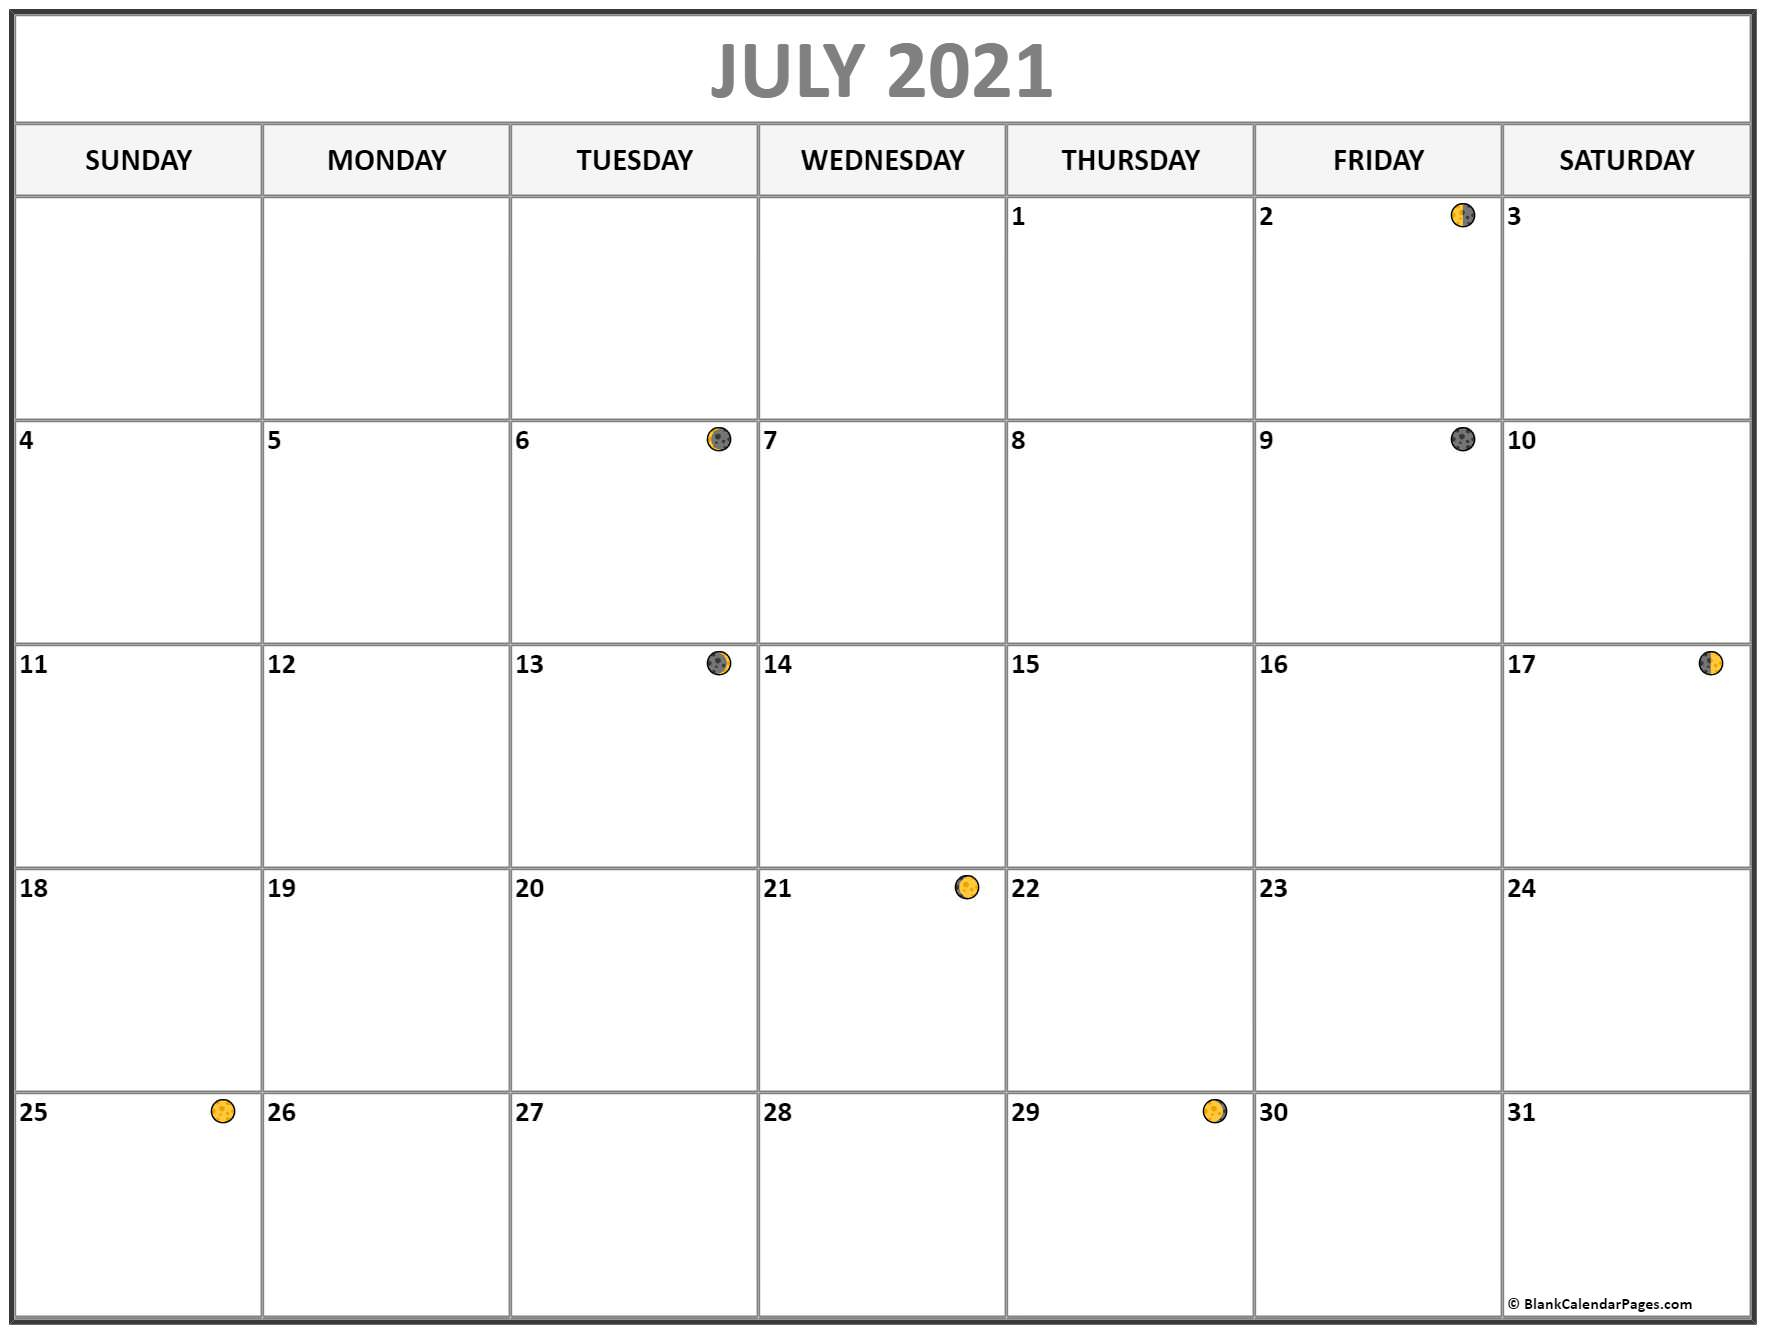 July 2021 Lunar Calendar | Moon Phase Calendar Intended For Moon Phase Deer Hunting Chart 2021